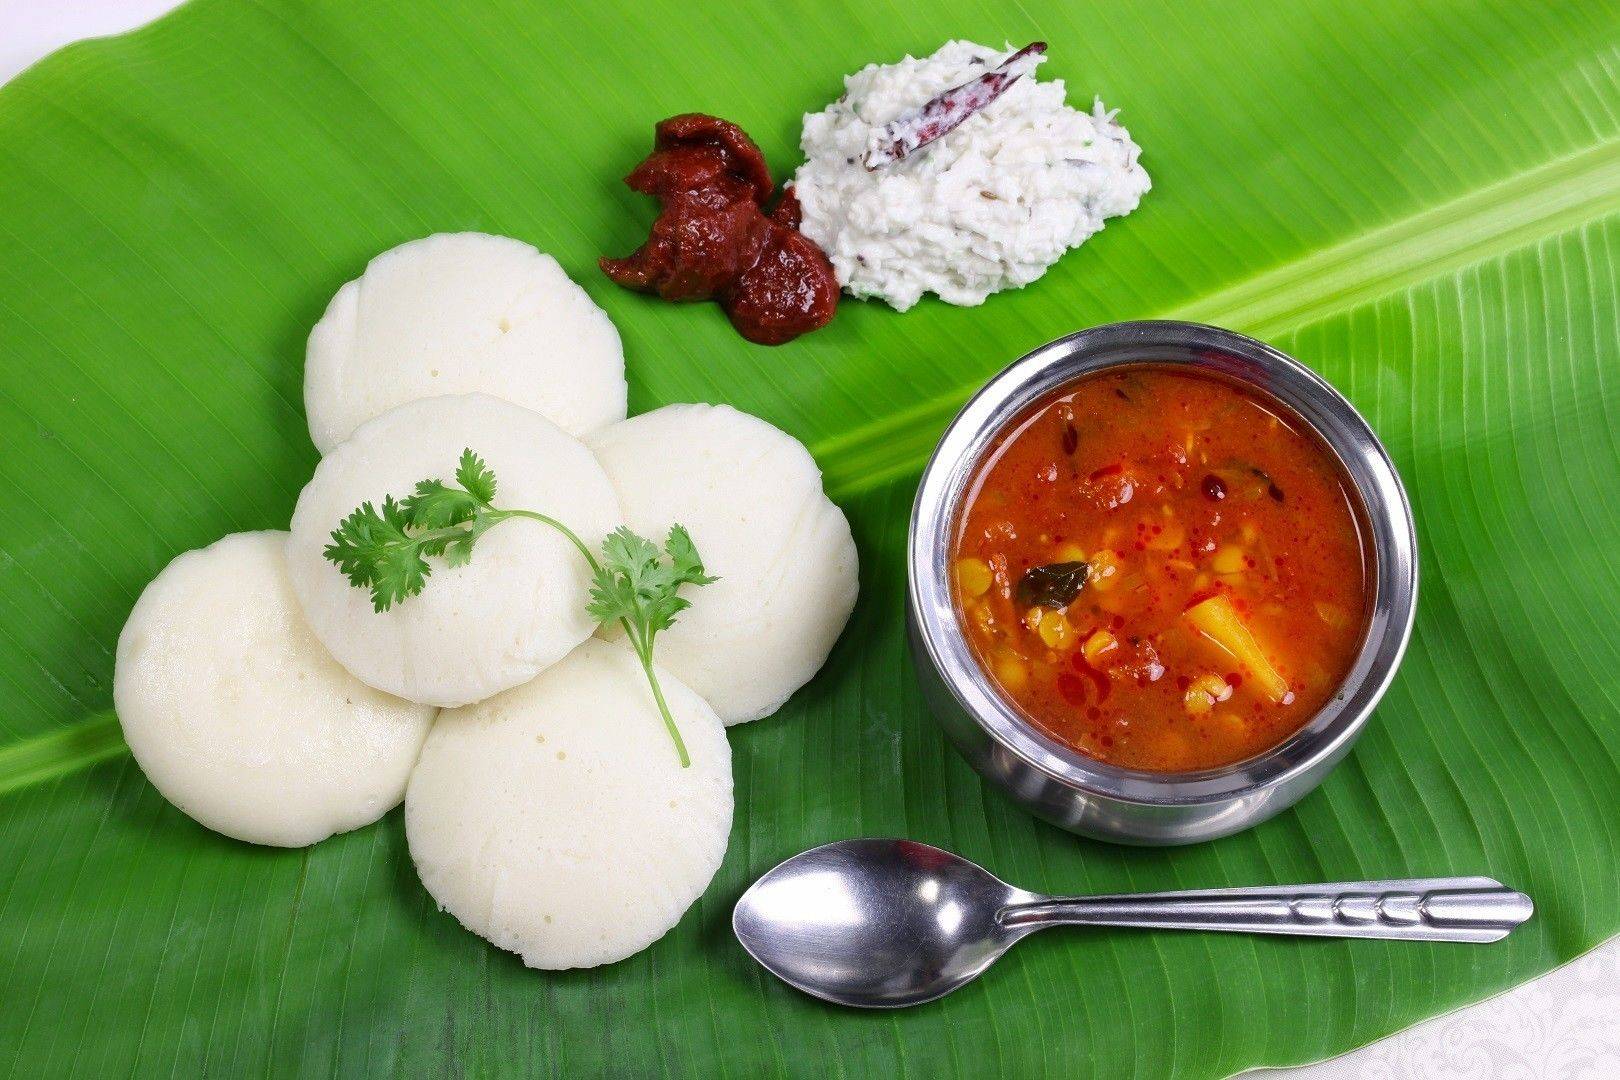 Try a typical South Indian breakfast when you travel to India